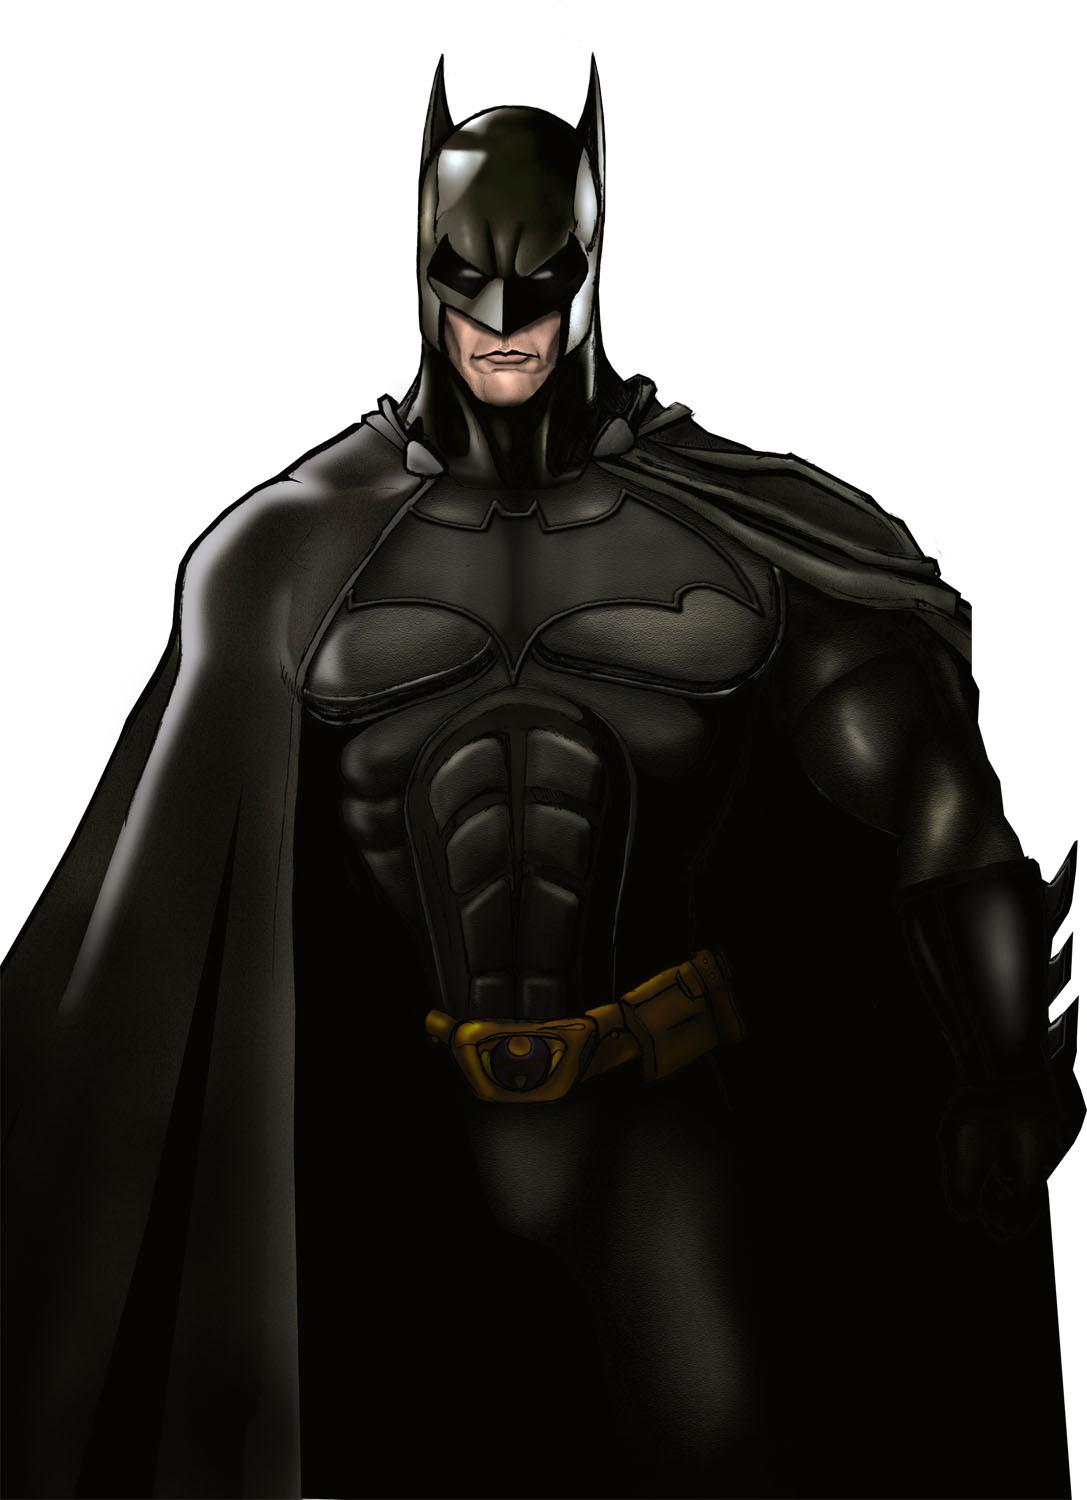 Batman Begins portrait